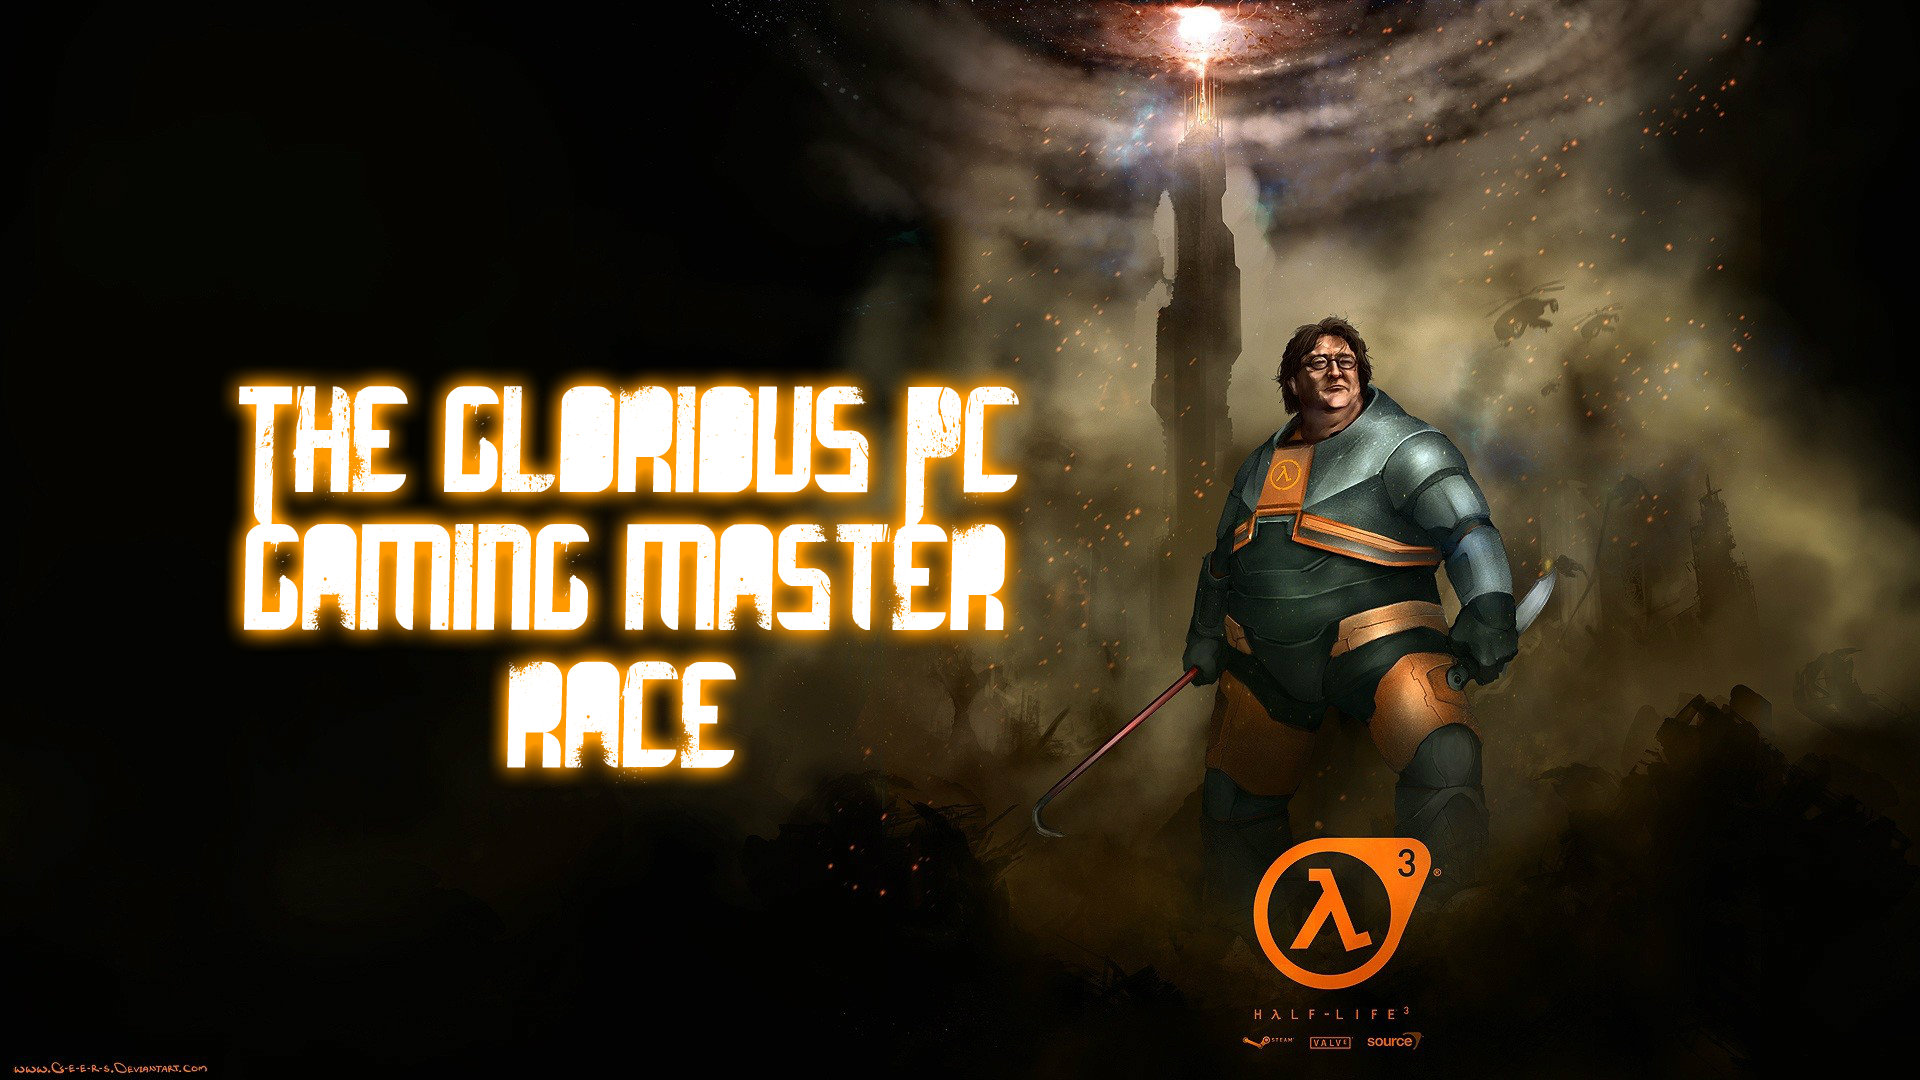 Pc Master Race Wallpapers: The Glorious PC Gaming Master Race